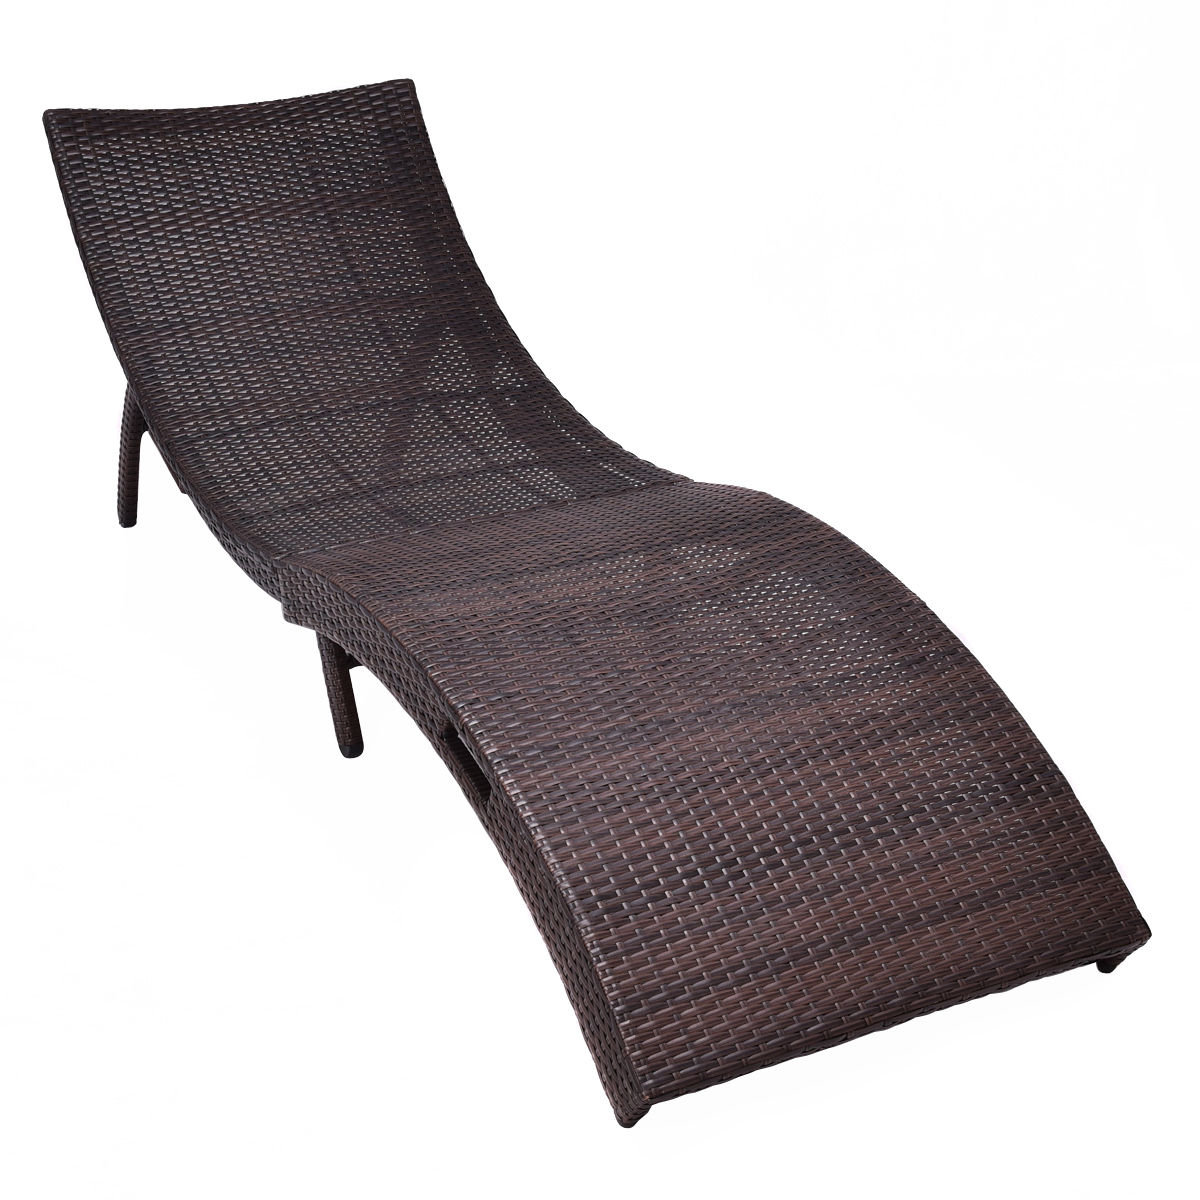 Fashionable Curved Folding Chaise Loungers Intended For Ghp 440Lbs Capacity Curved Brown Folding Rattan Patio Poolside Chaise  Lounge Chair (View 9 of 25)